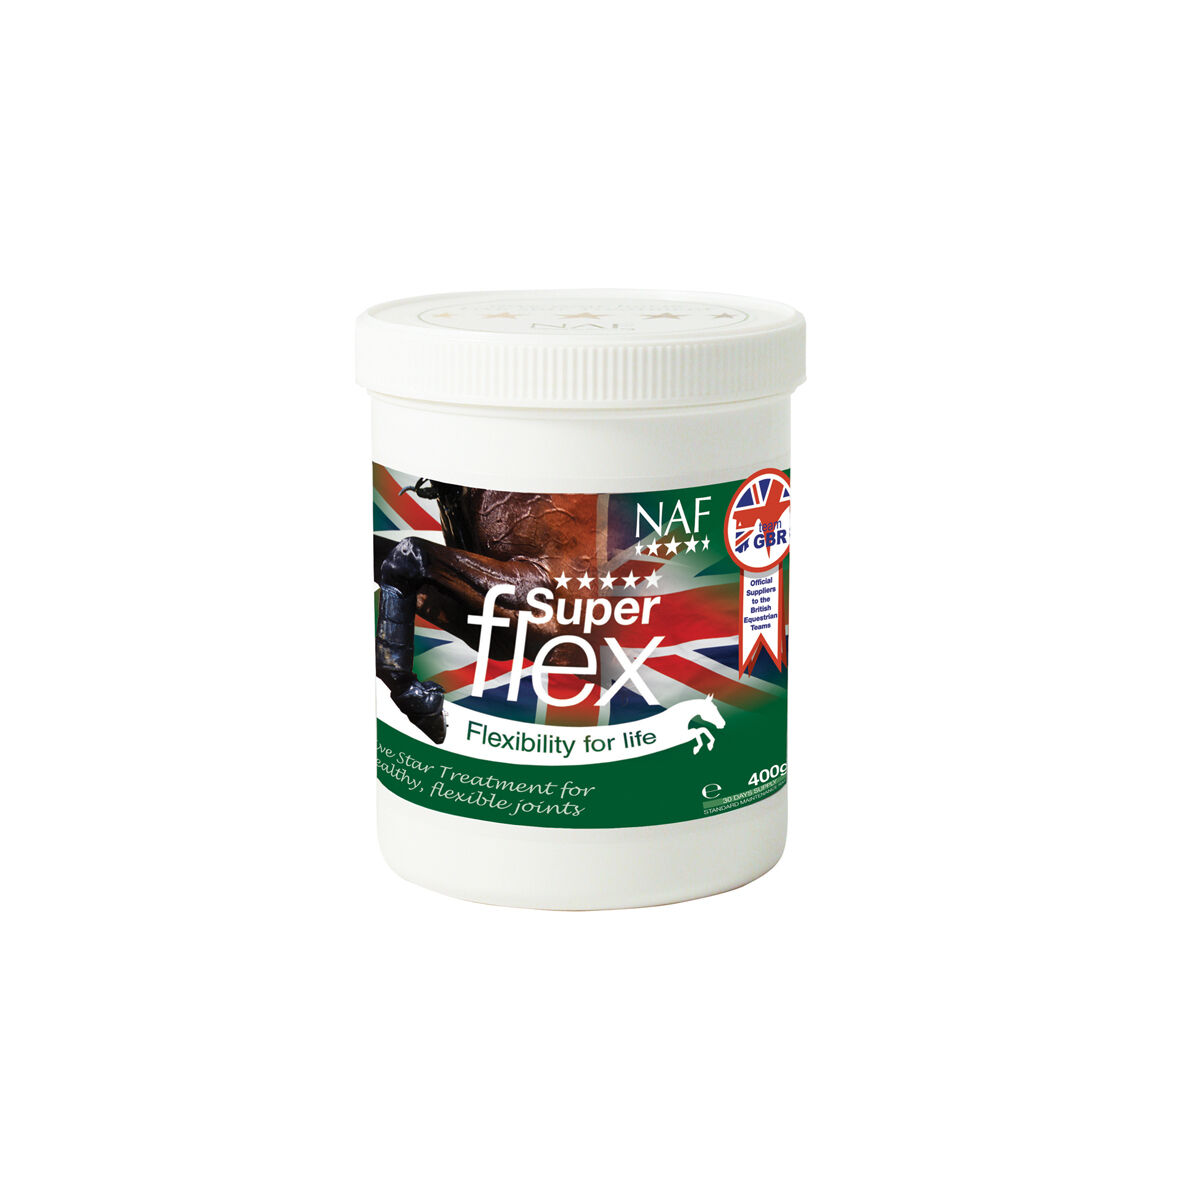 NAF Five Star Superflex joint supplement for horses & ponies 400gm 0r 800gm